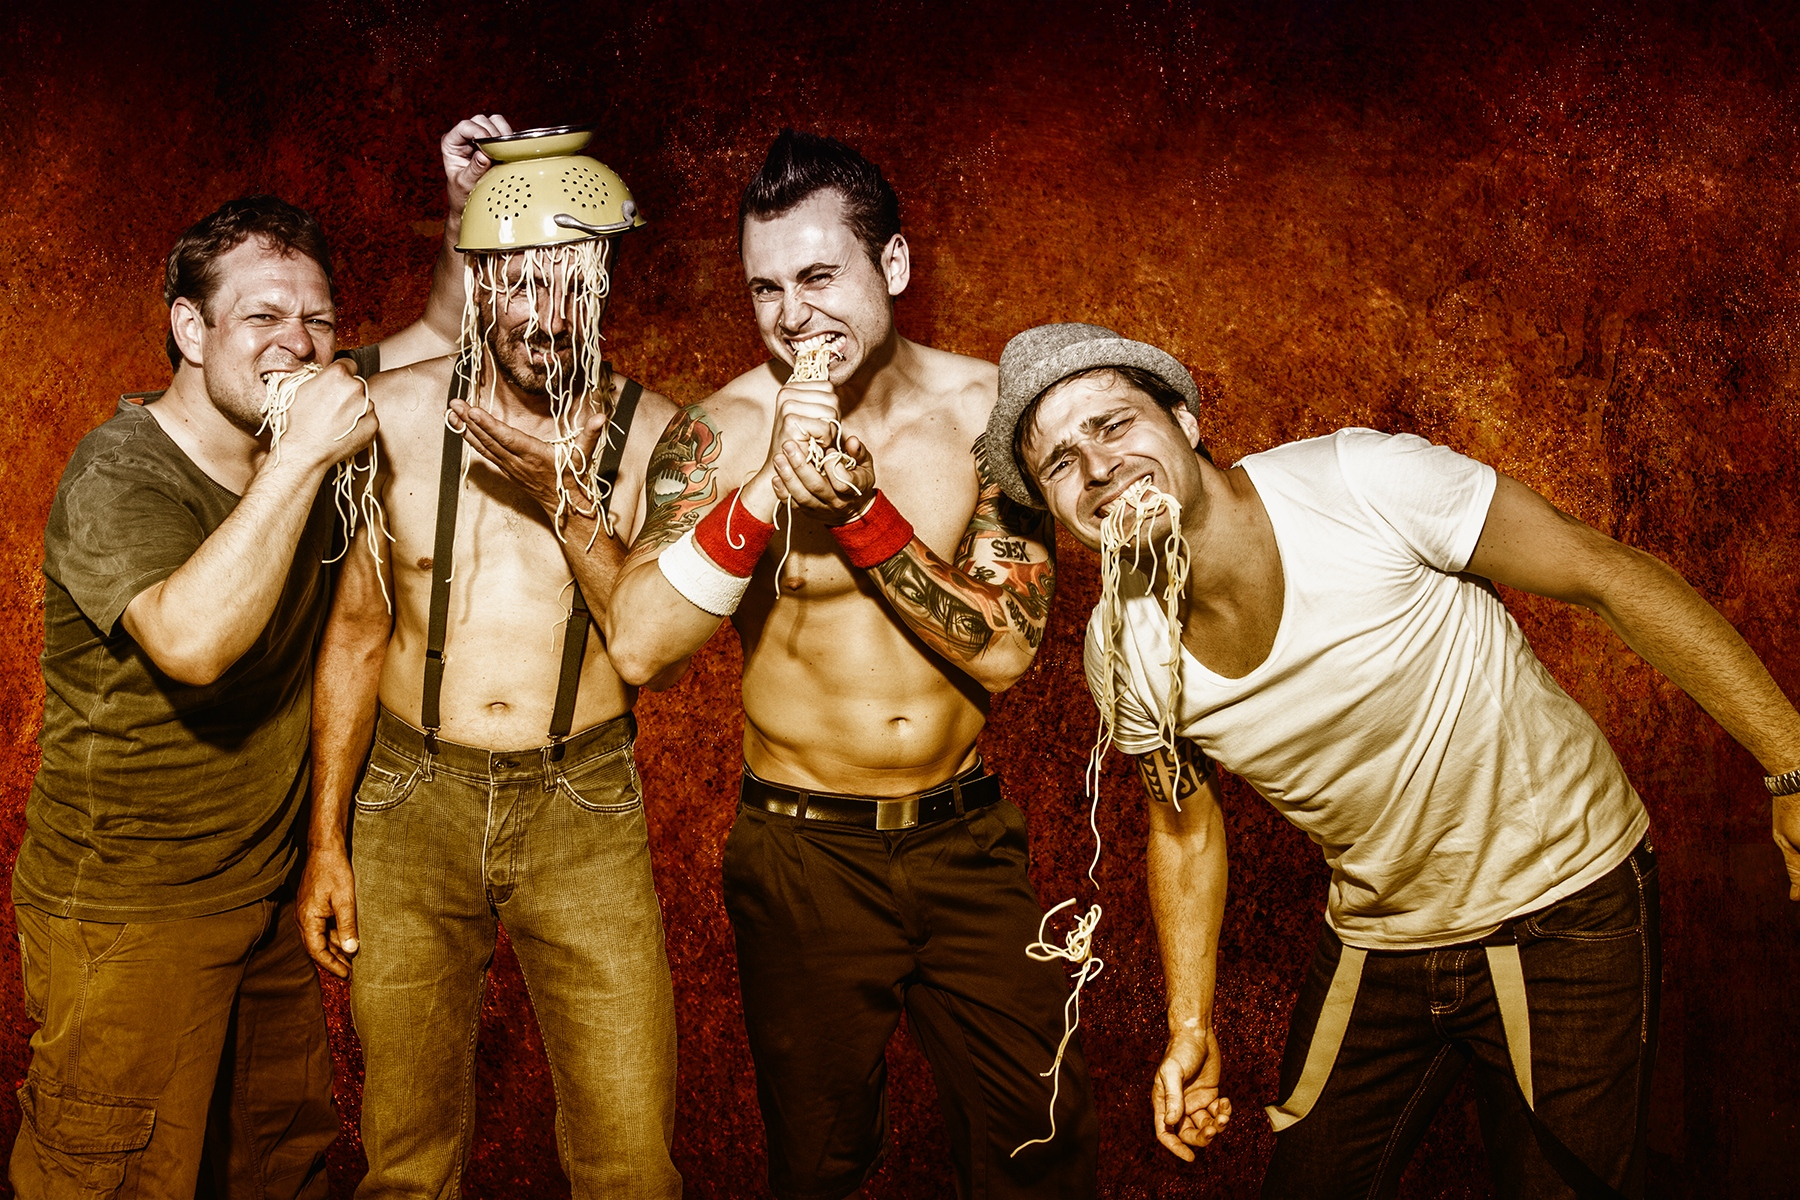 PSYCHO SEXY - Red Hot Chili Peppers Tribute Band Live im Pink Dormagen